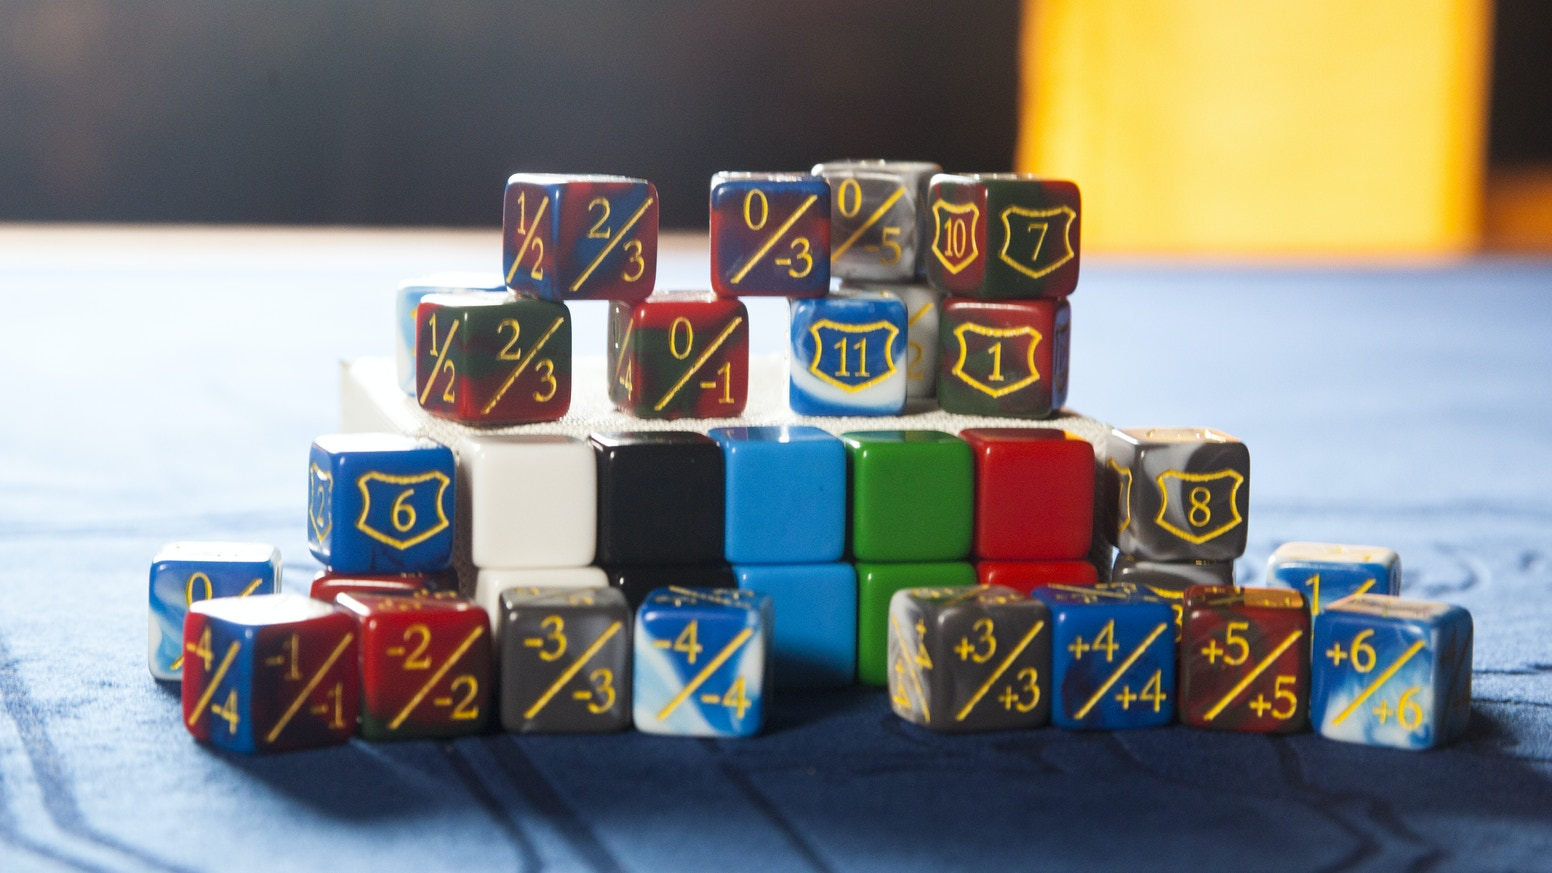 Special plastic and metal dice sets specifically made to enhance your collectable card game and tabletop gaming experiences.